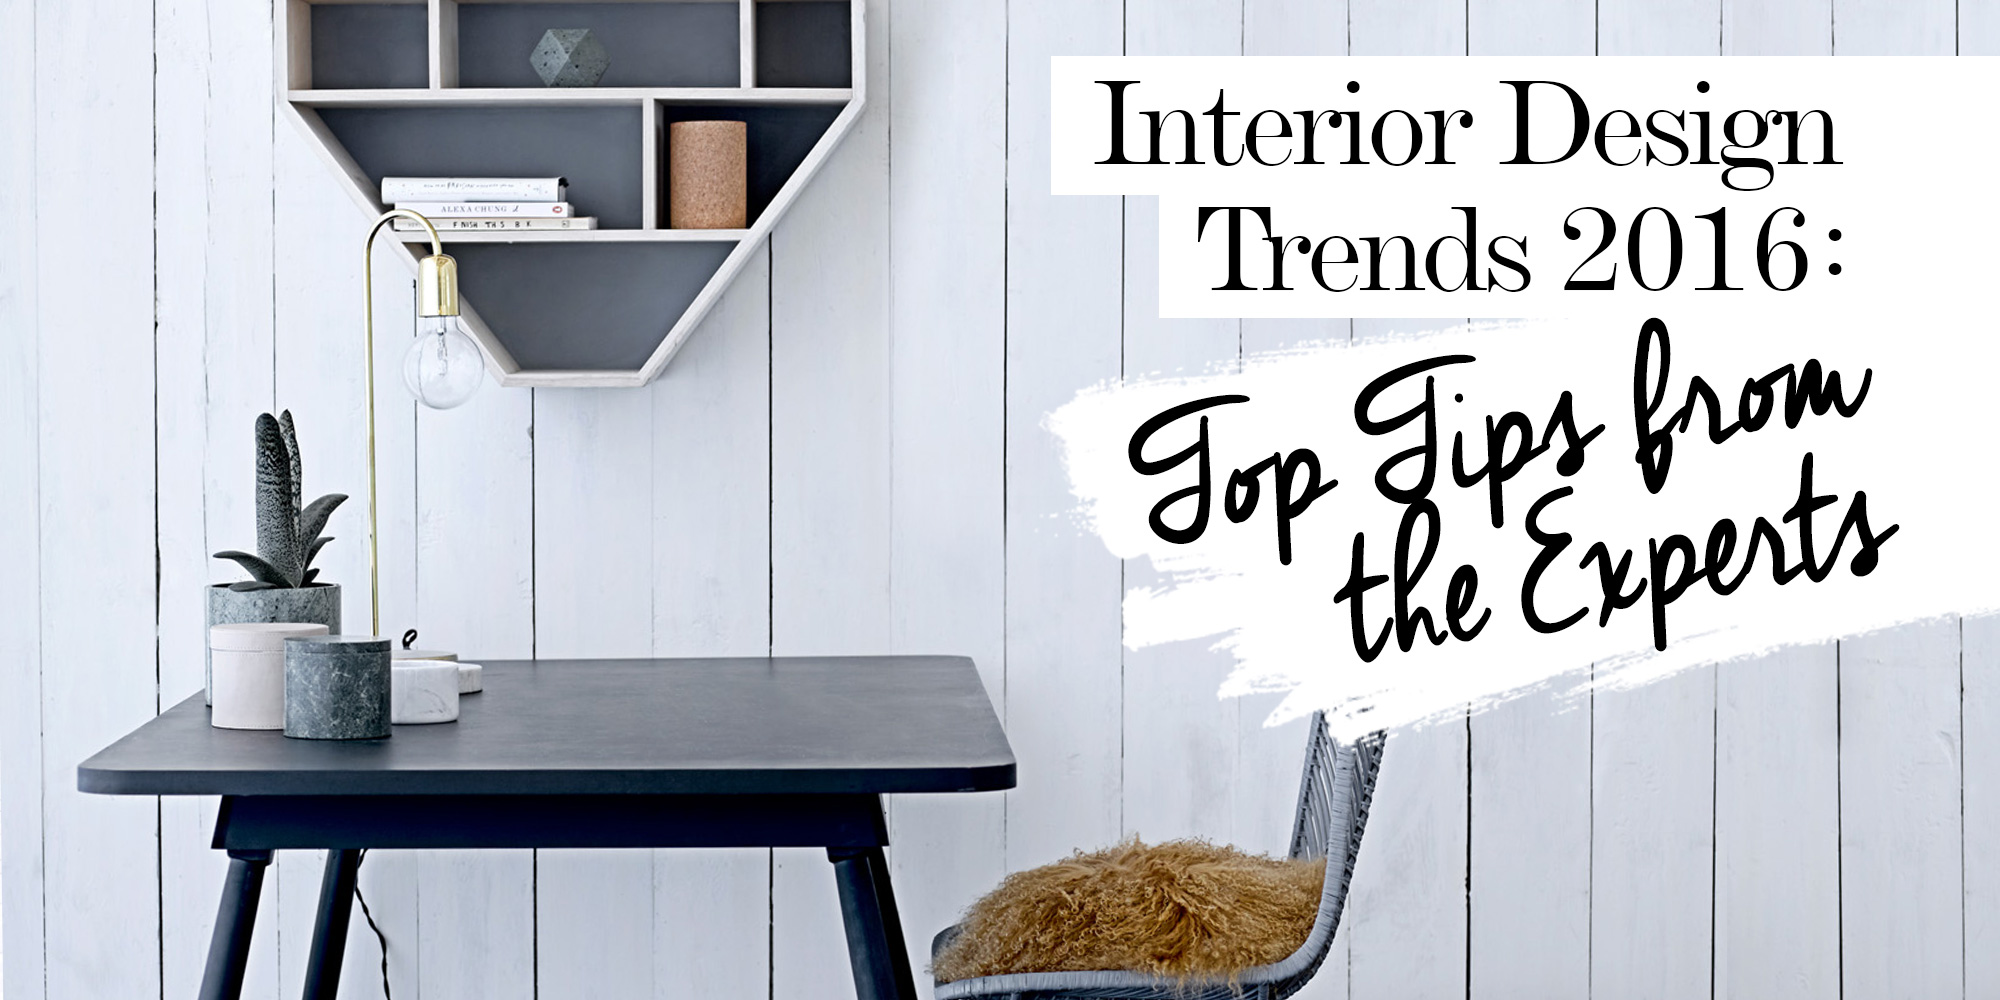 2016 Interior Design Trends: Top Tips From the Experts - The LuxPad